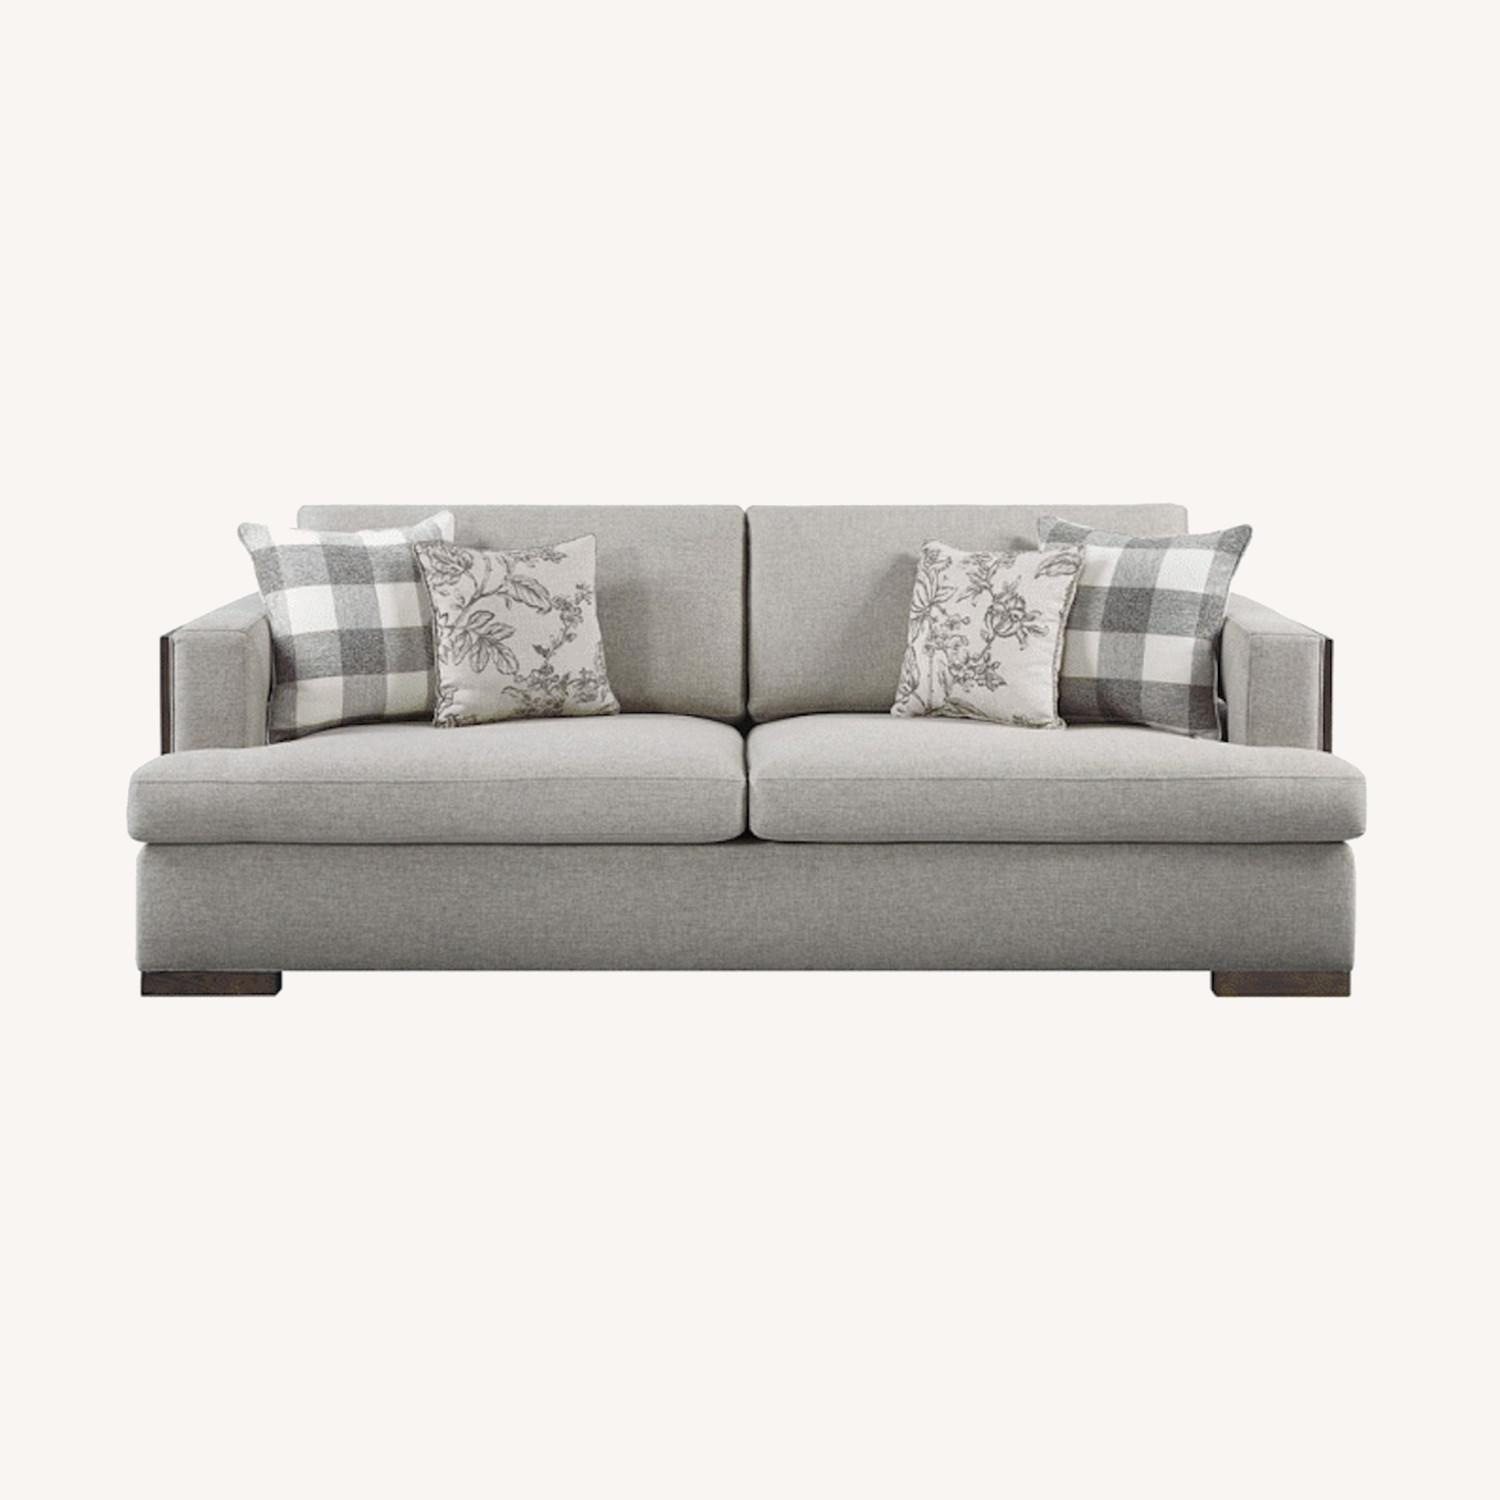 Ashley Furniture Couch - image-0